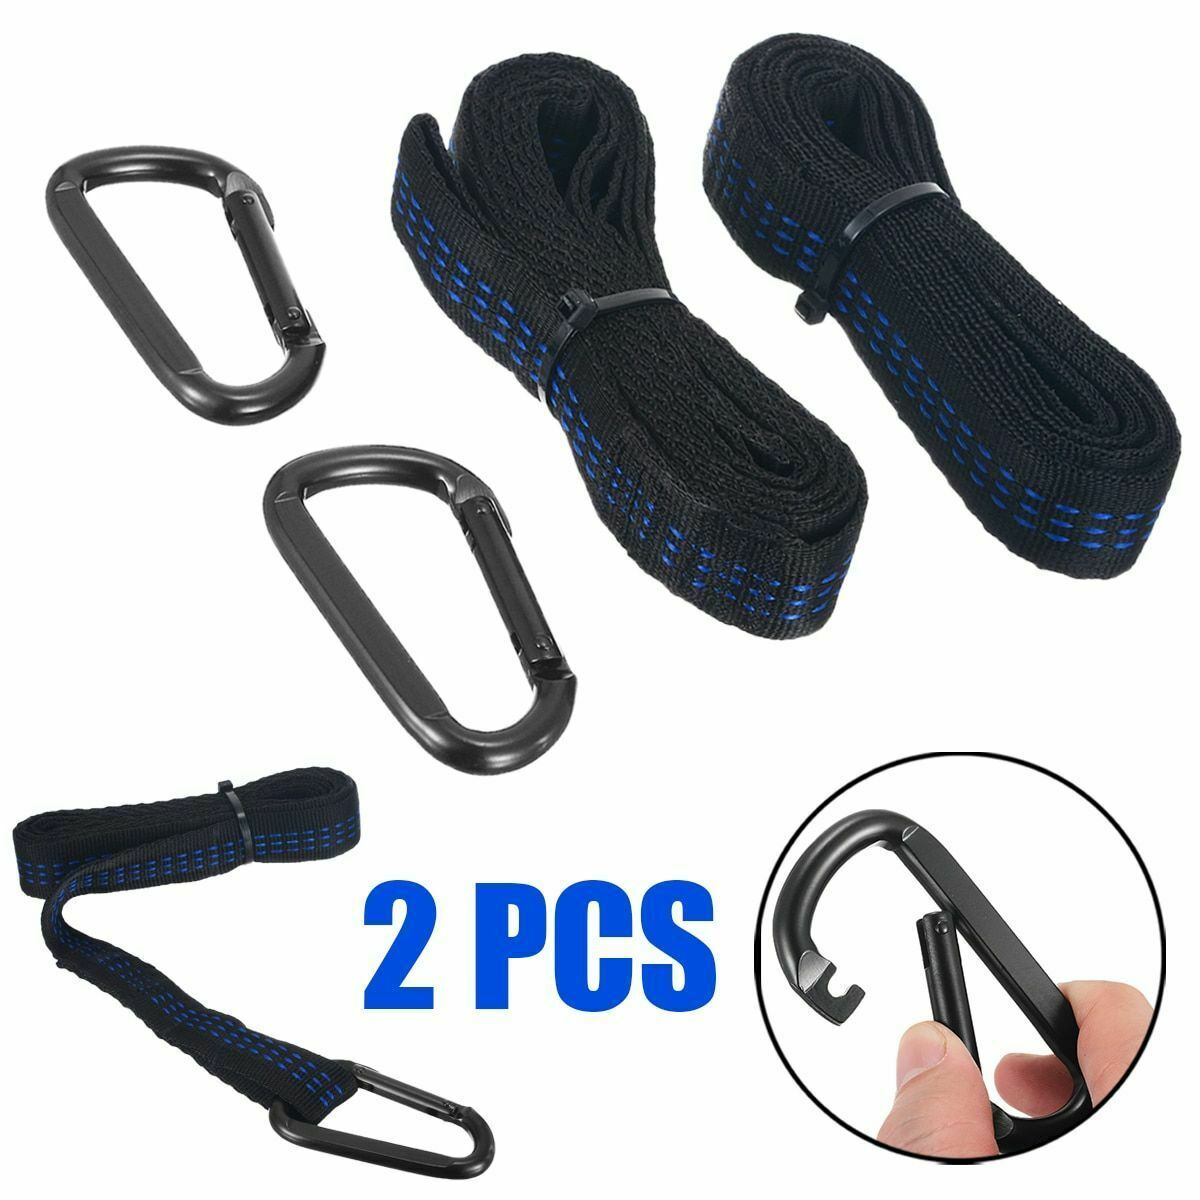 2 Pcs Adjustable Tree Hanging Belt Hammock Straps 2 Pcs Buckles Camping Outdoor